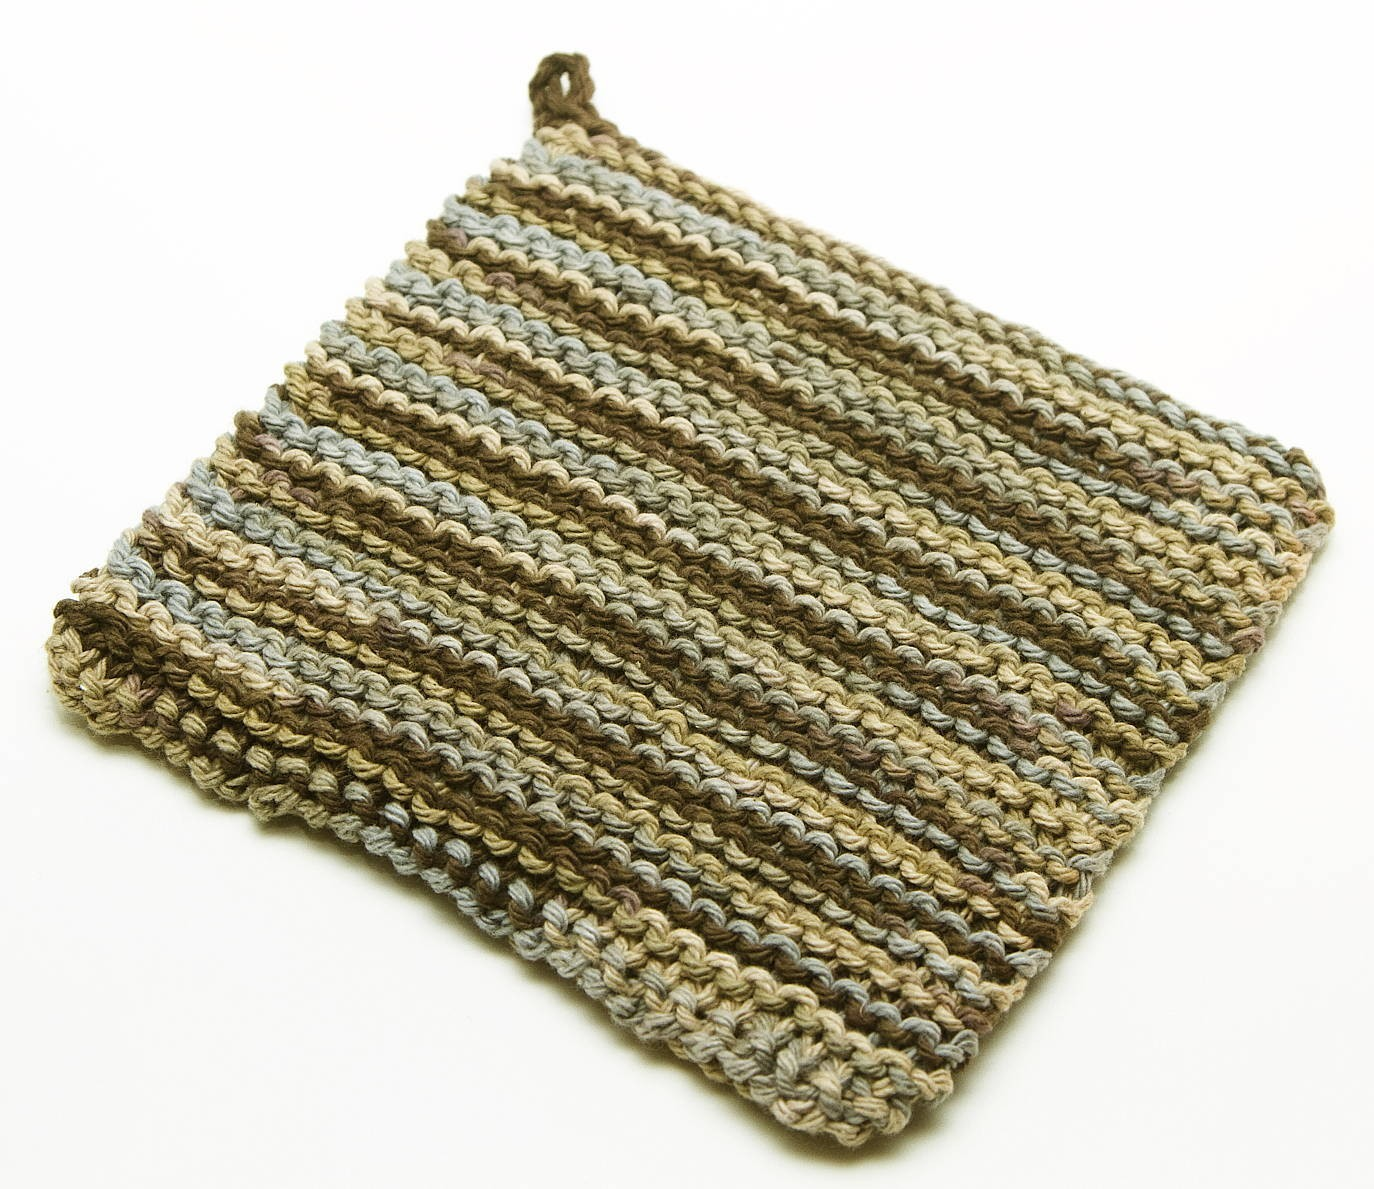 Double Knit Patterns Free : Pot Holder Knitting Pattern A Knitting Blog